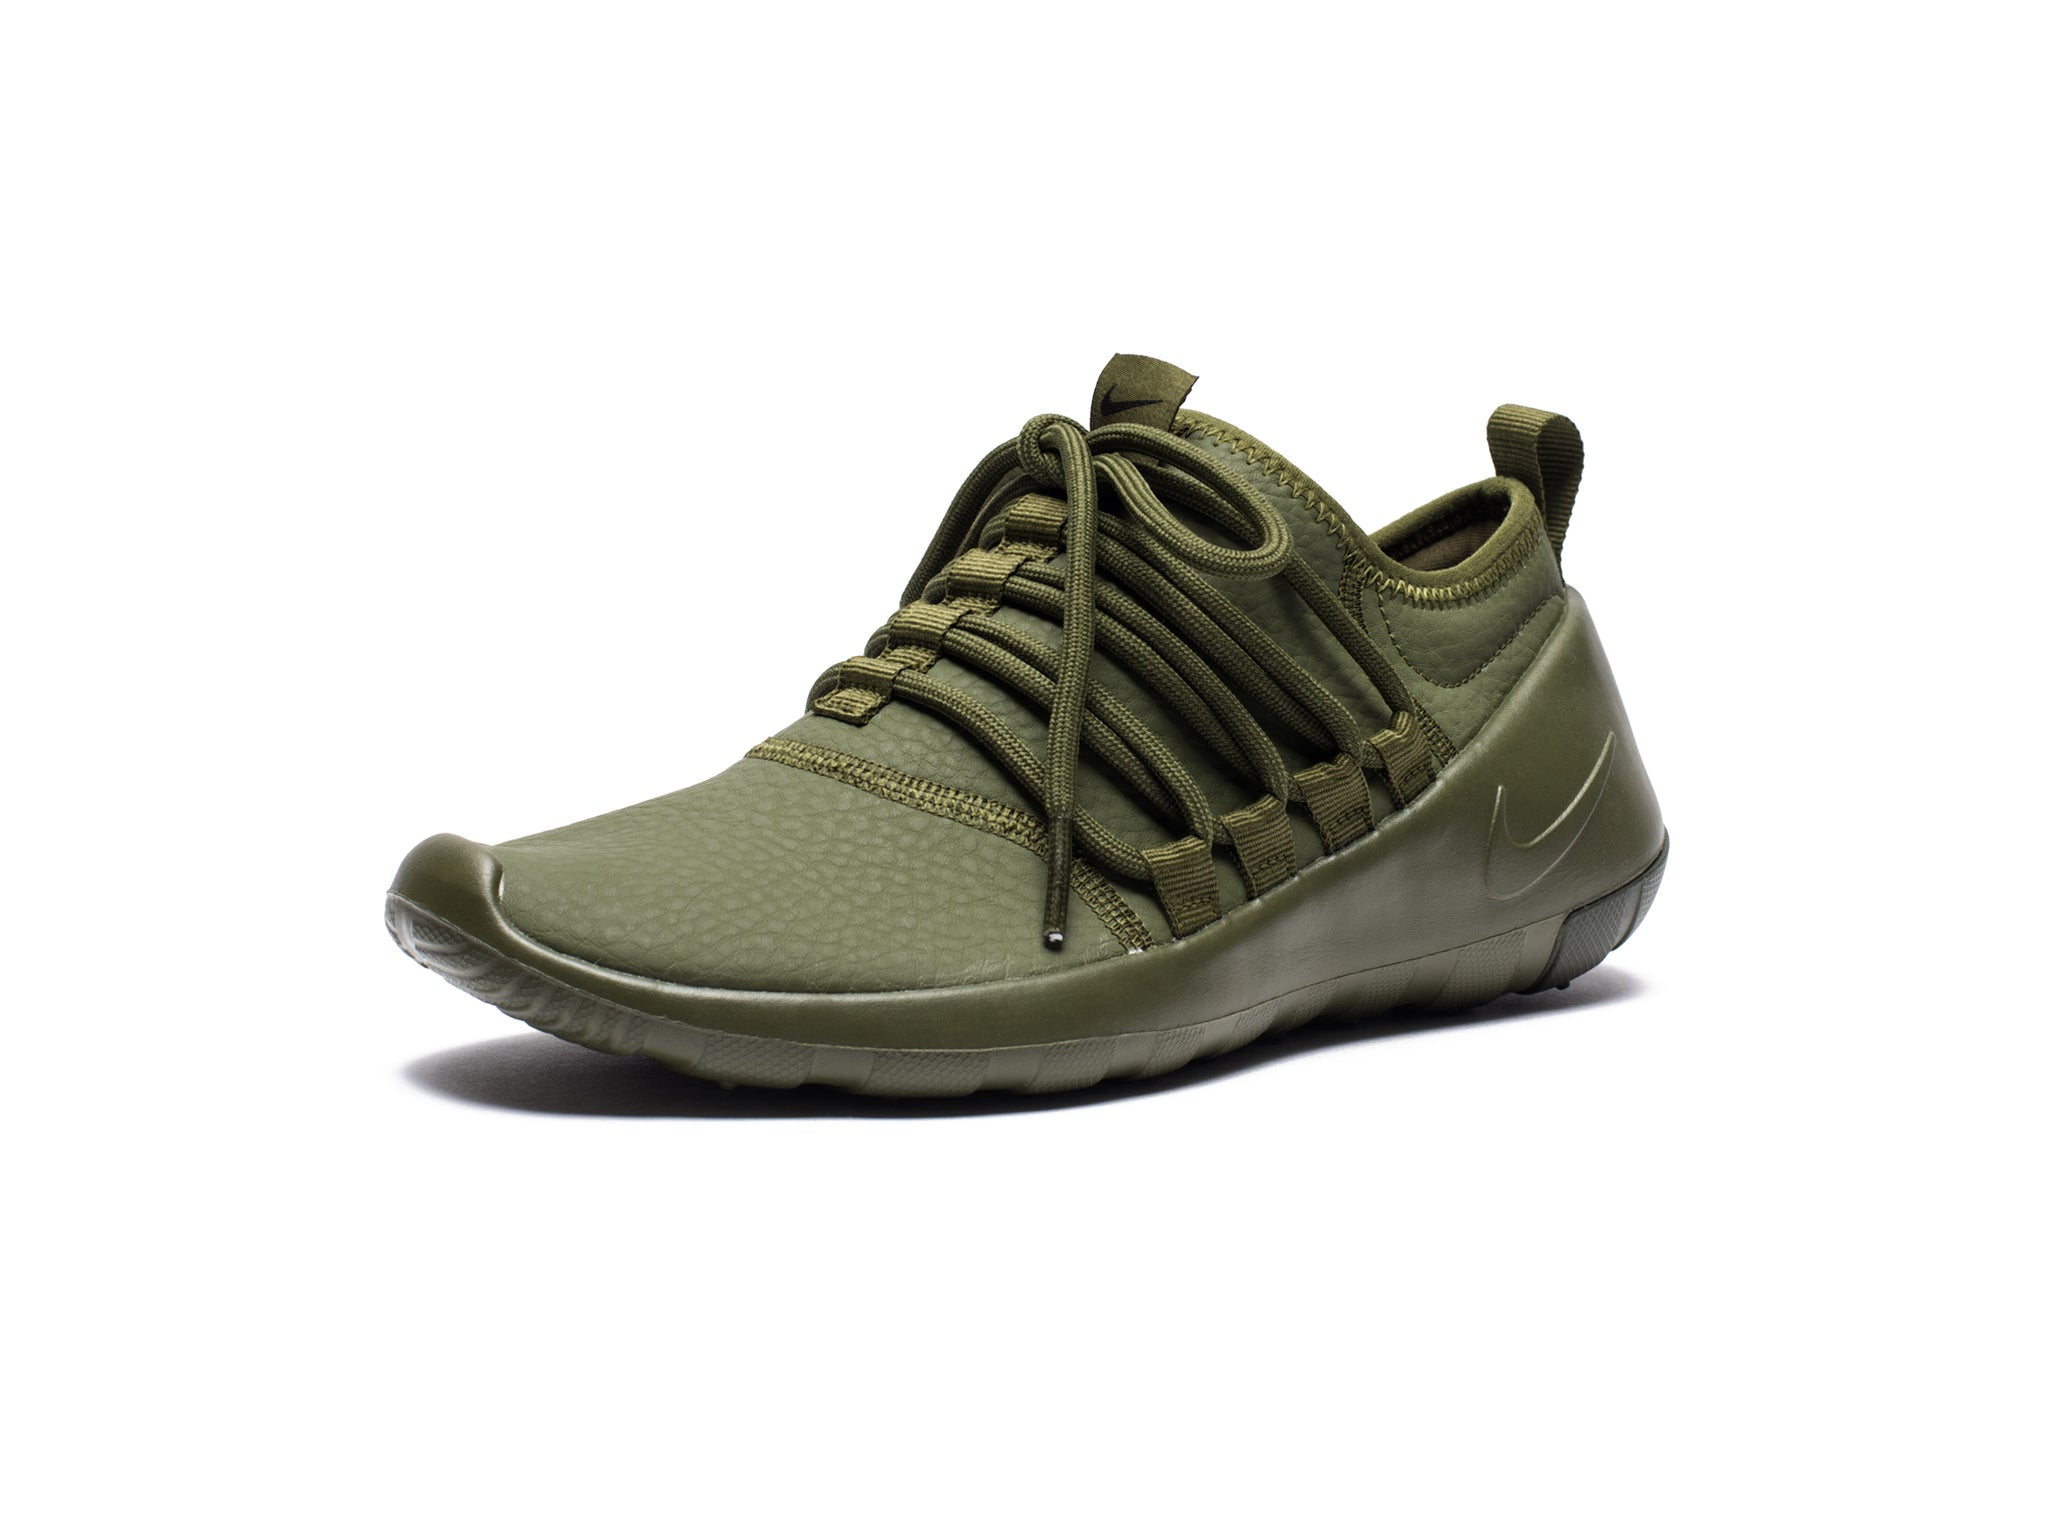 WOMEN'S PAYAA PREMIUM - LEGIONGREEN/BLACK